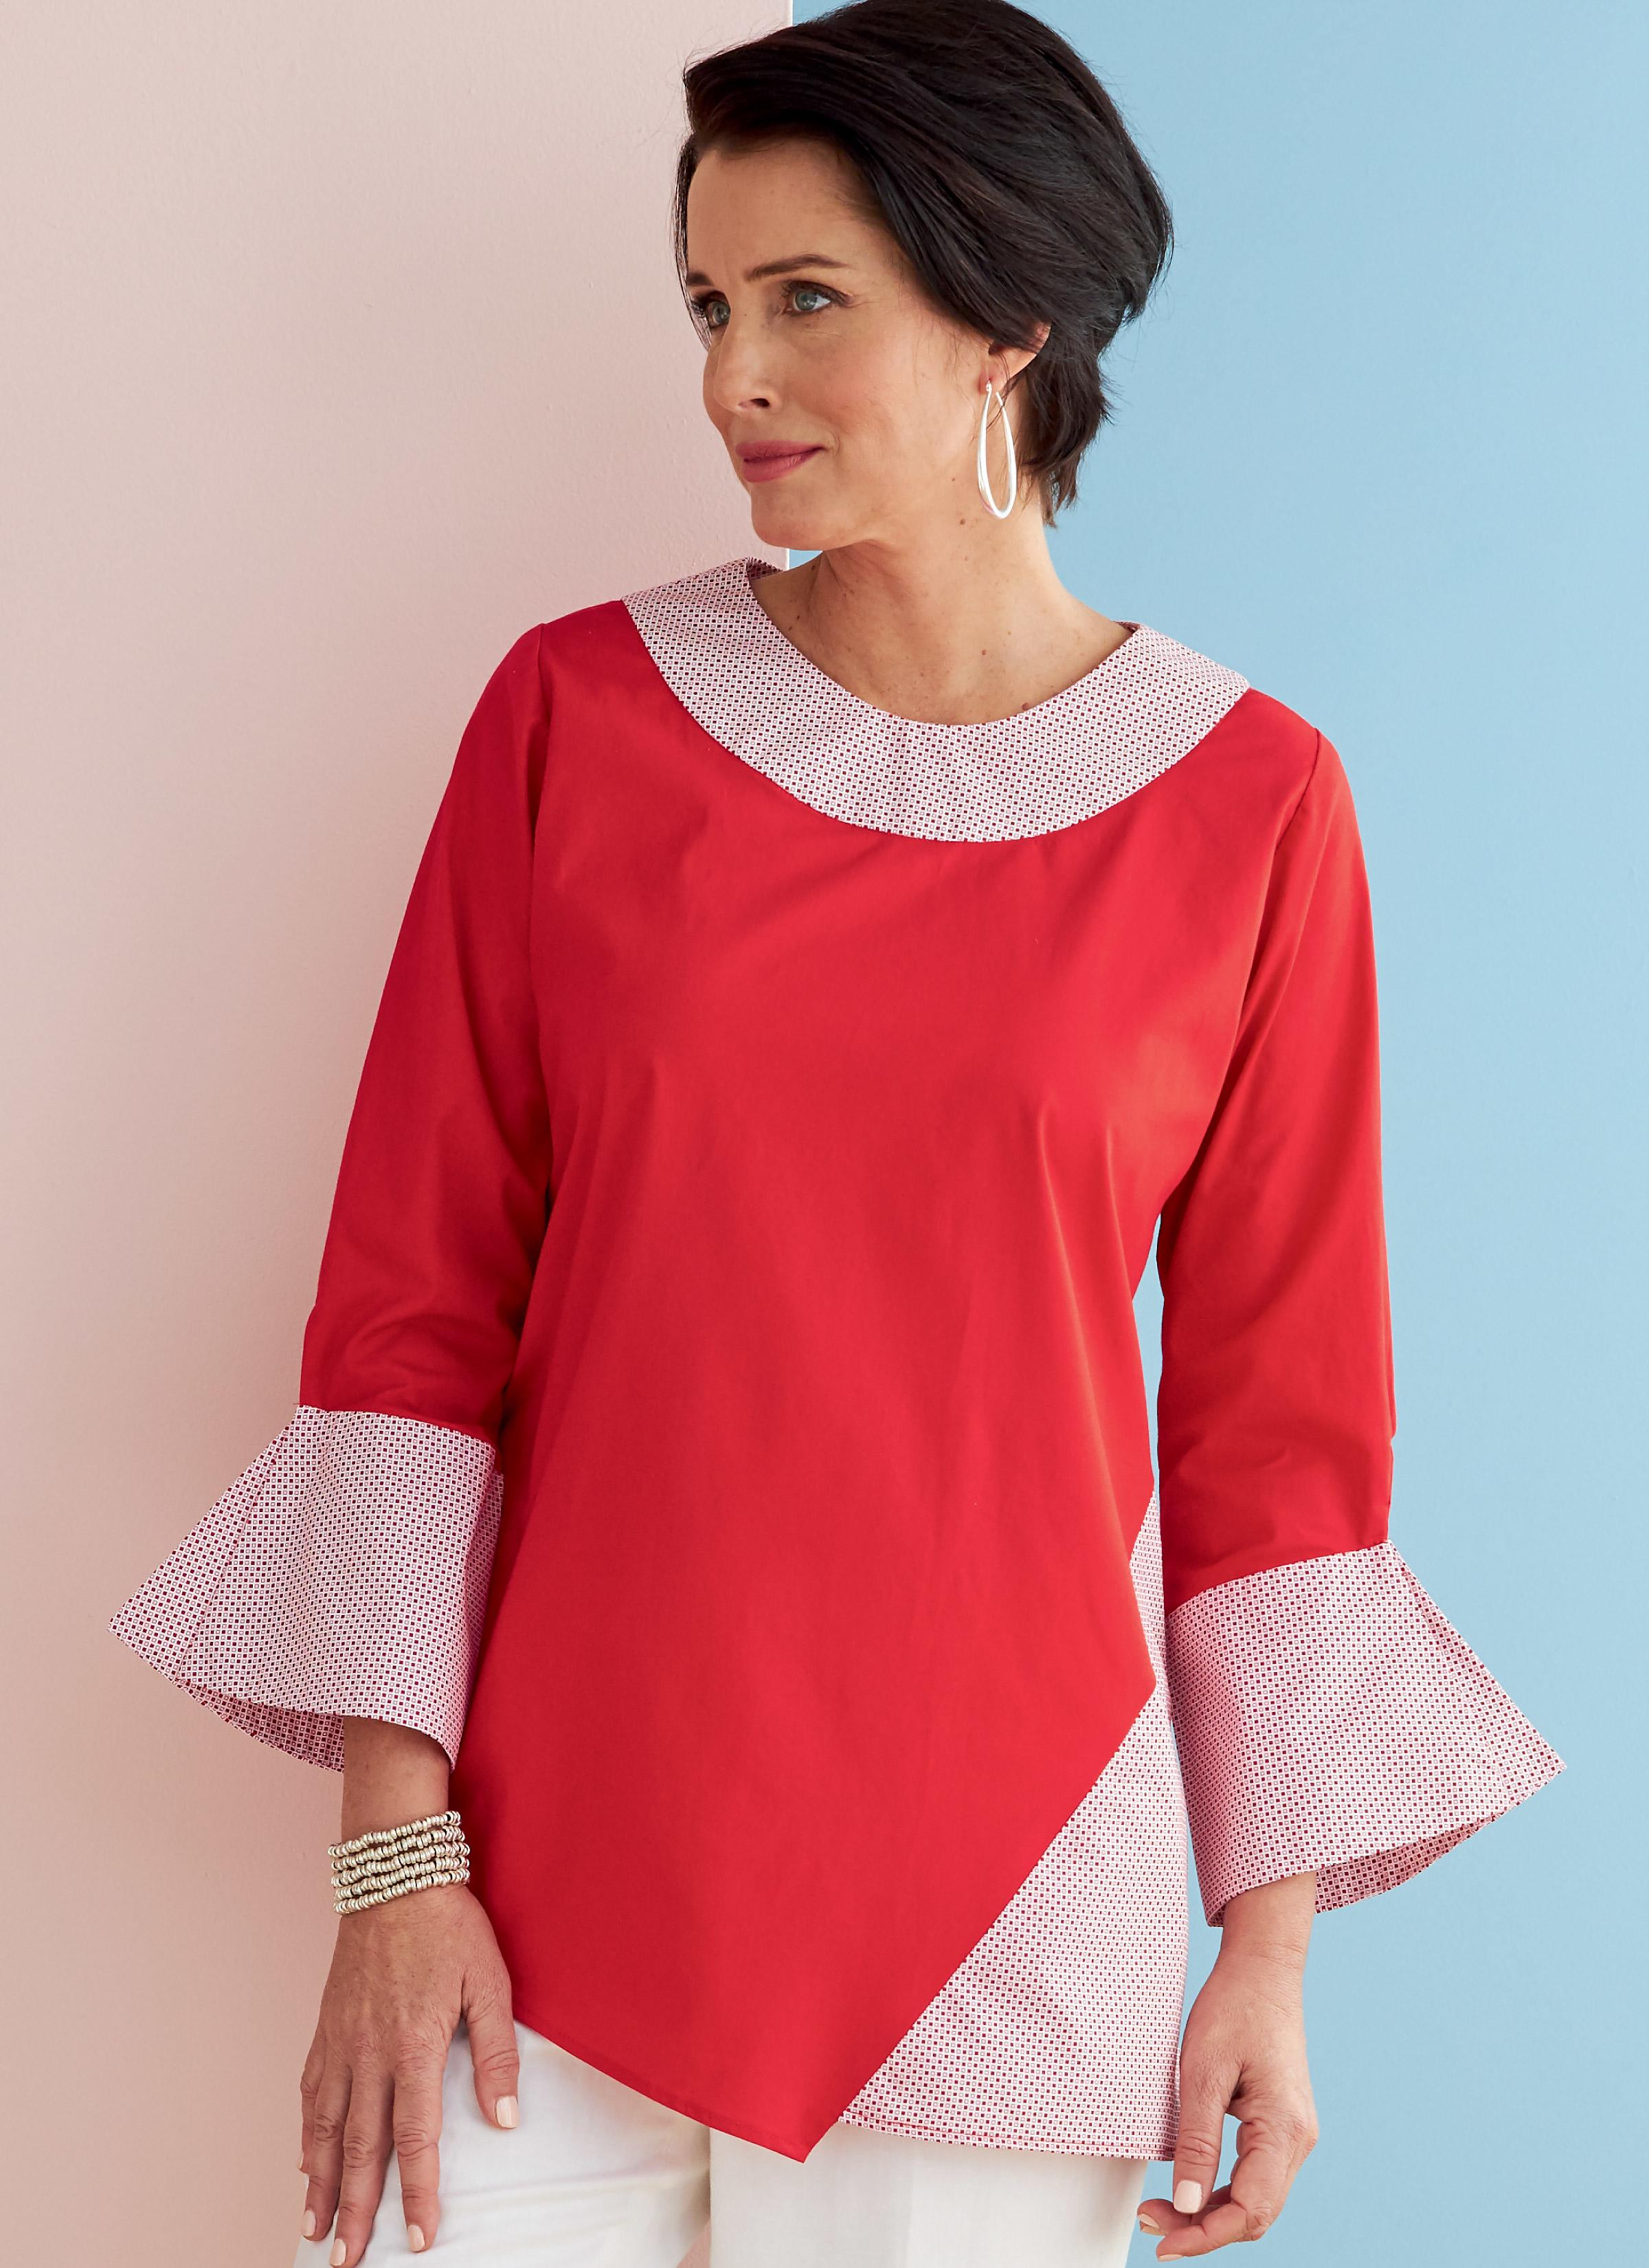 Butterick B6734 Misses' & Women's Top